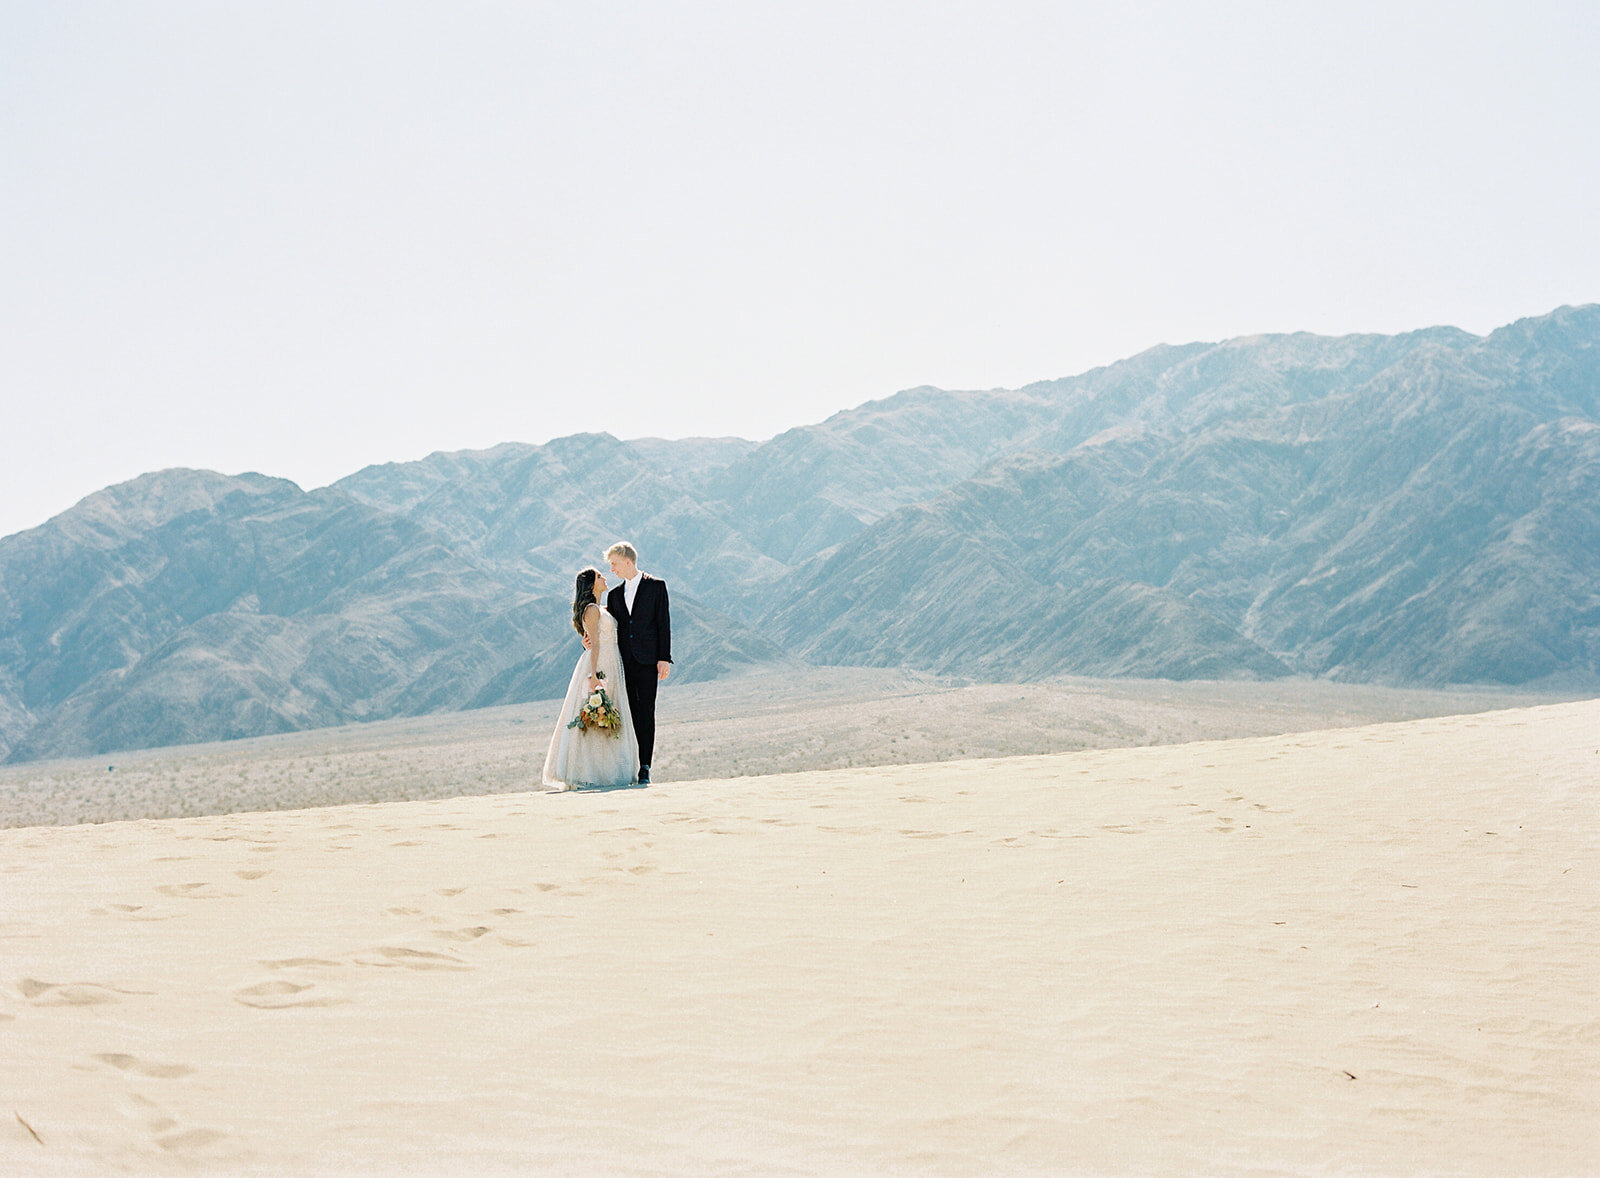 Bride and groom on sand dune in death valley Photographed by Amy Mulder Photography